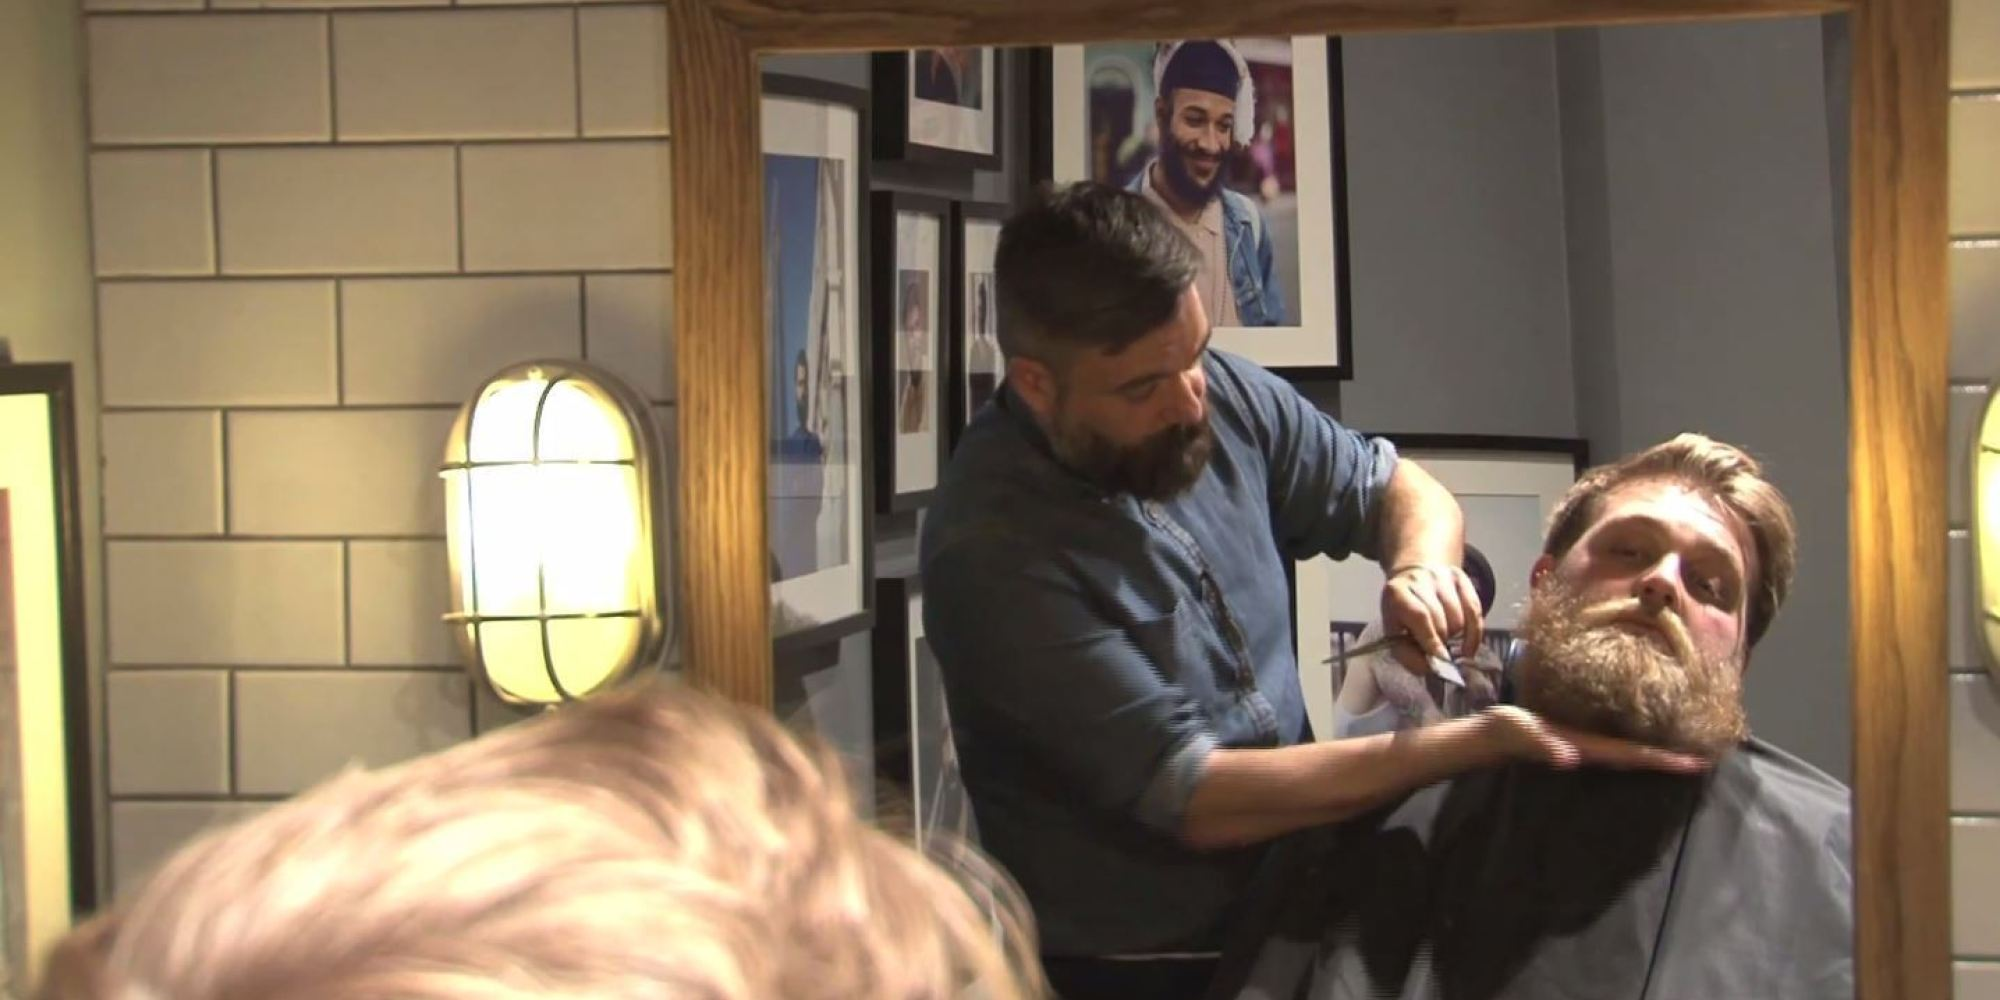 Barber Beard Trim : Watch: How To Trim Your Own Beard At Home If Youre Growing It Out ...